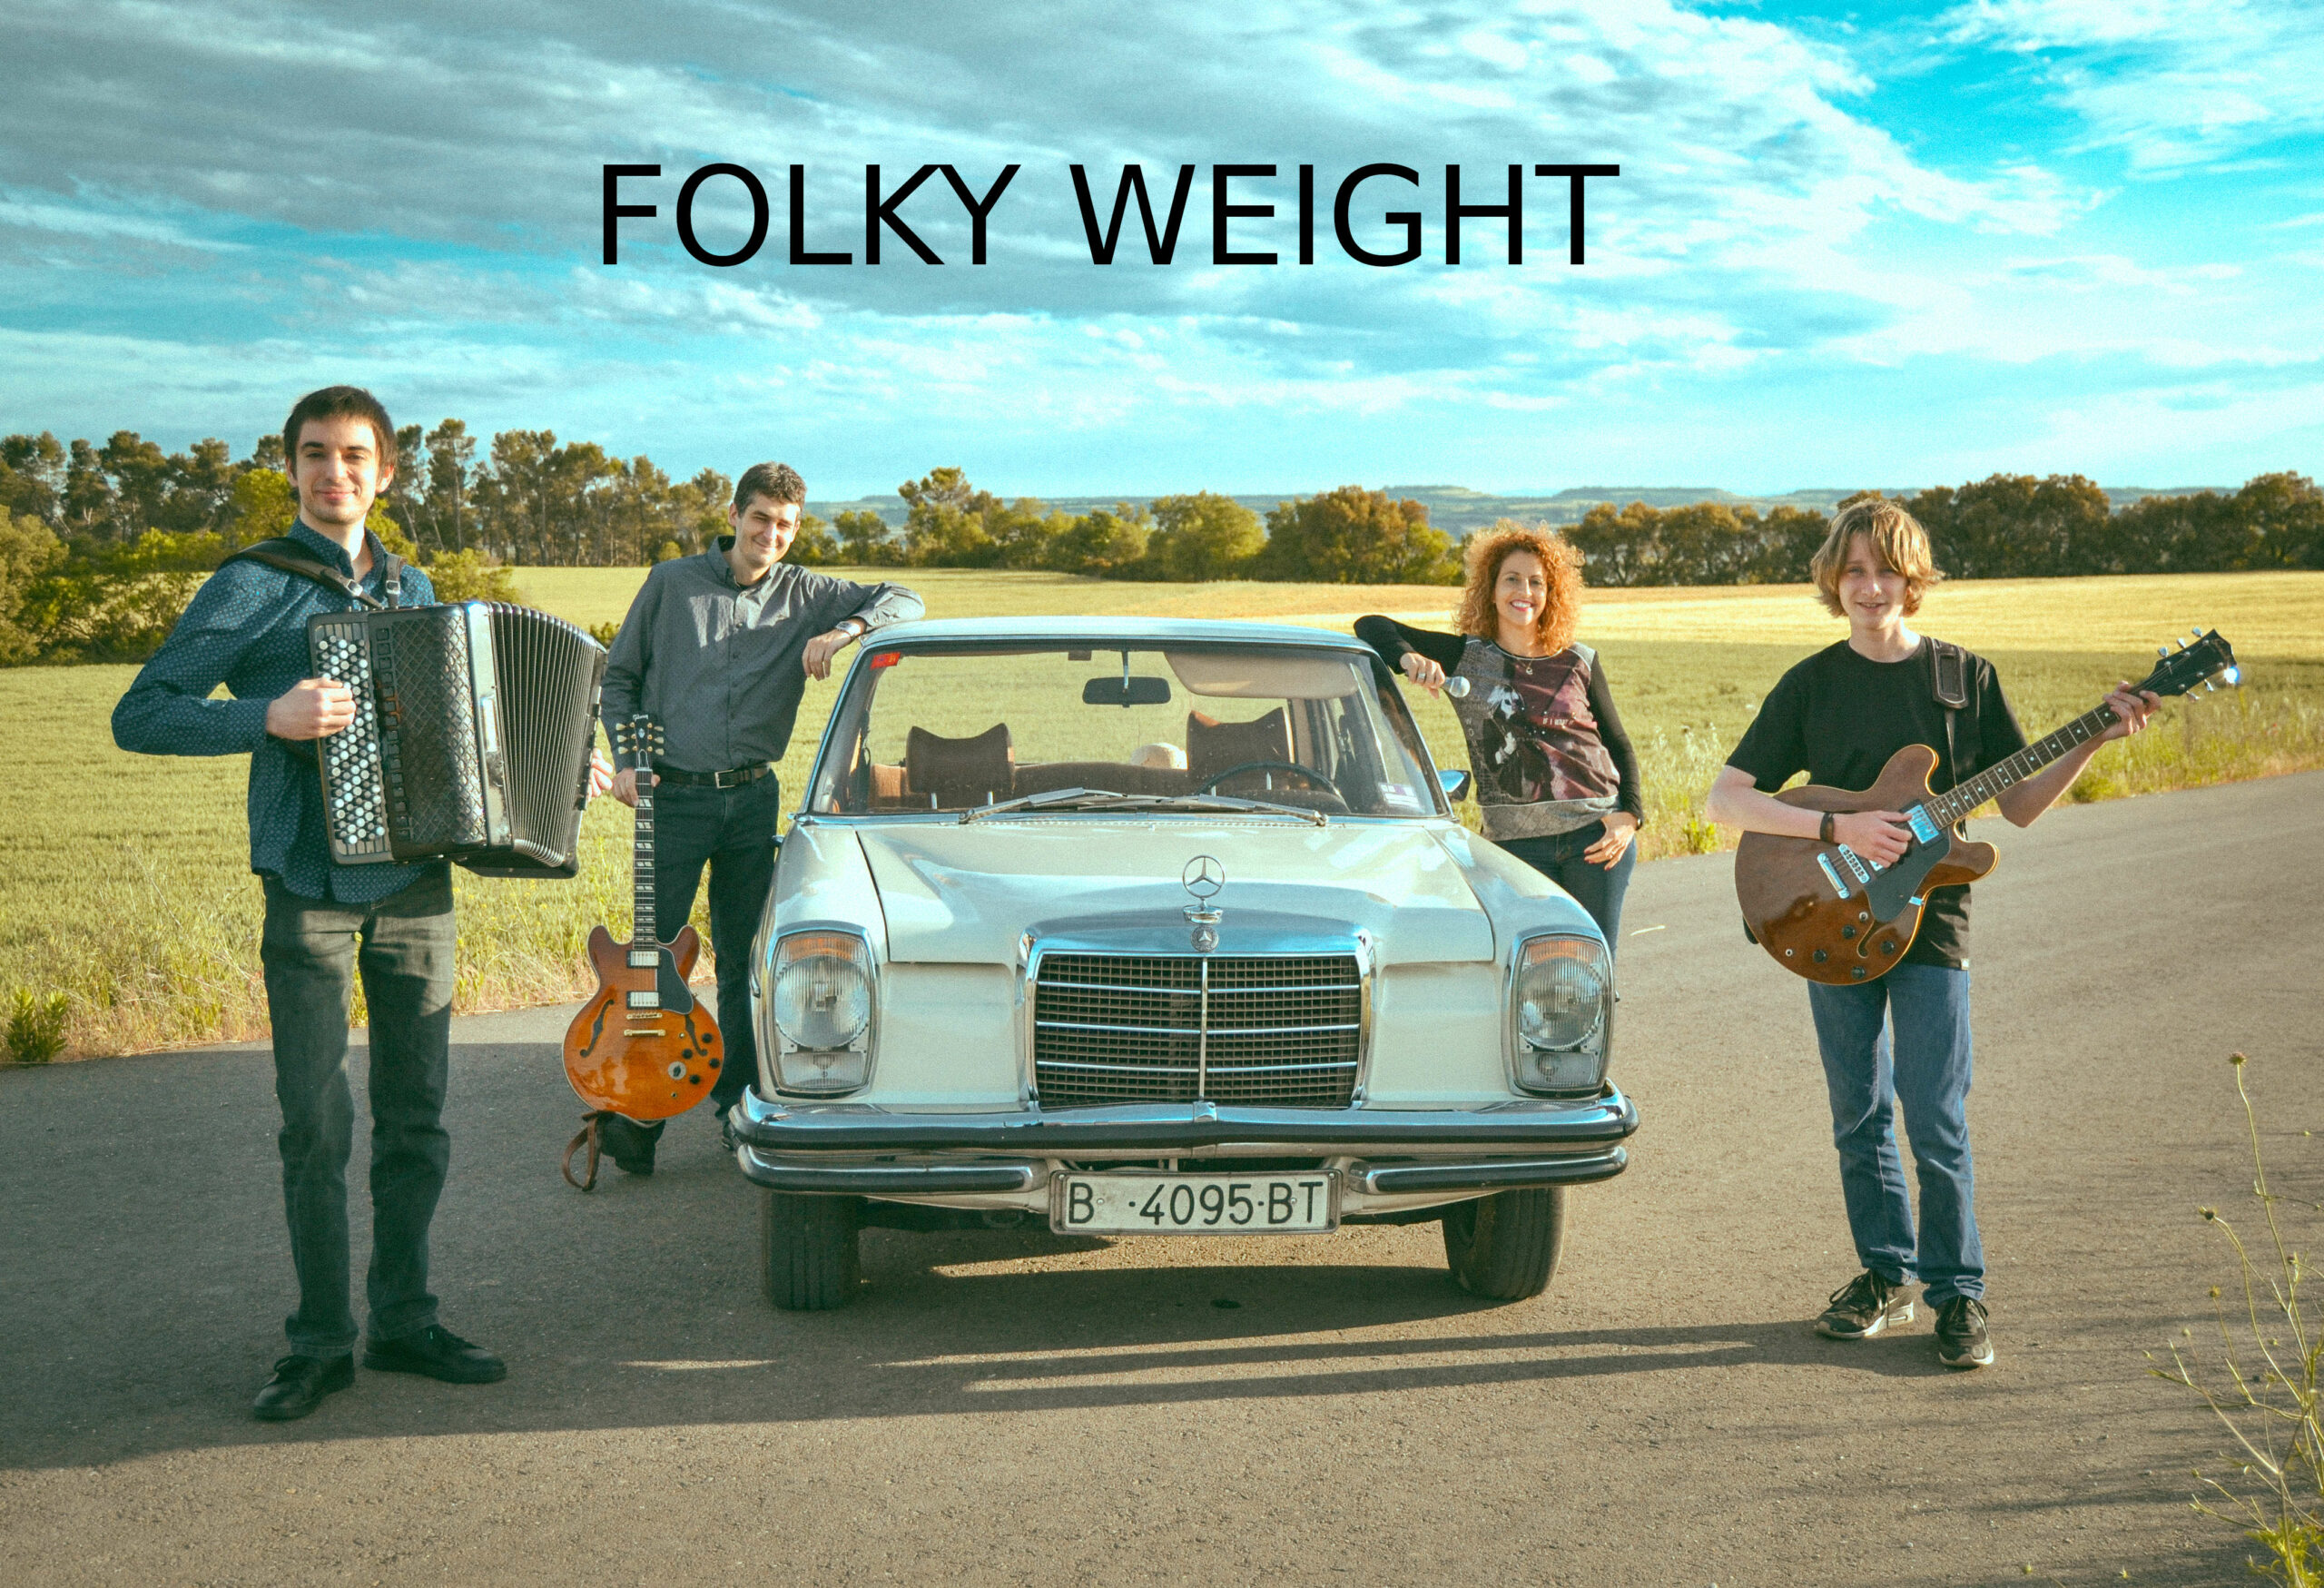 Folky Weight